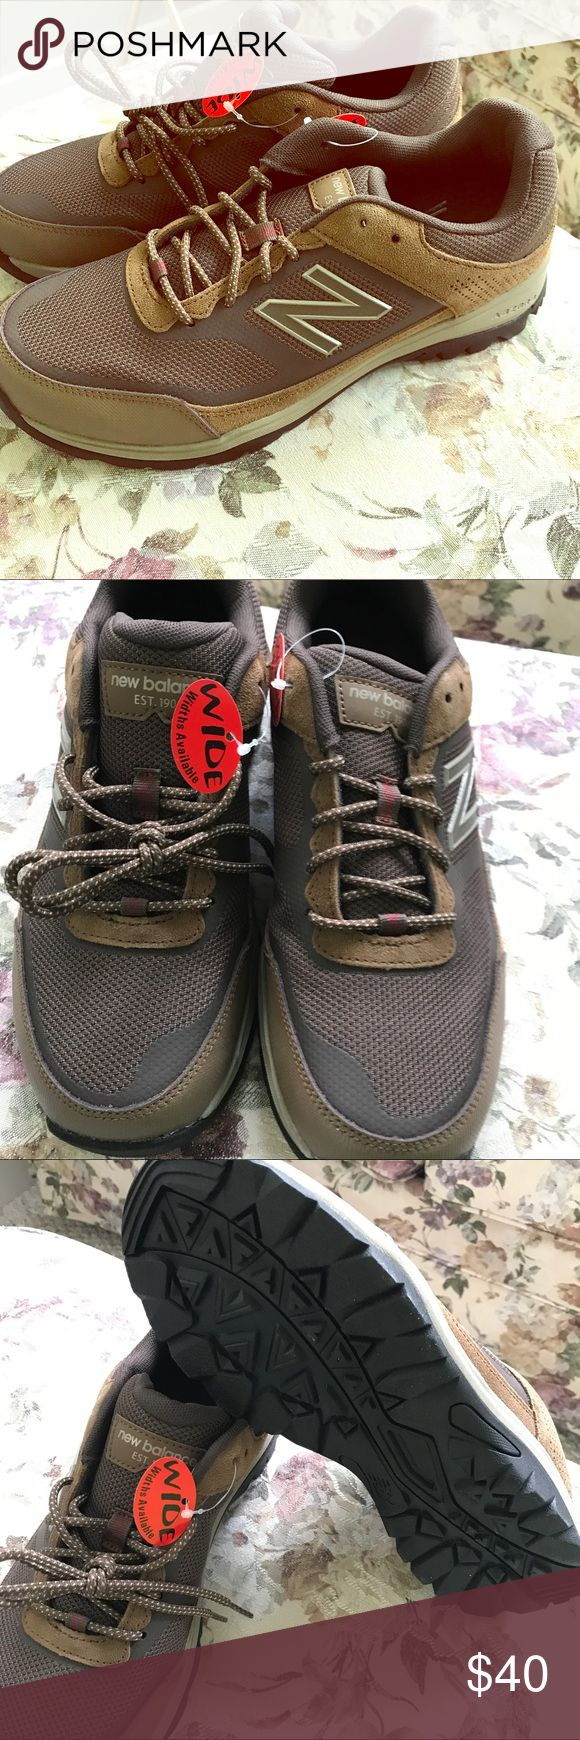 New Balance Hiking/Walking Shoes Size 11 wide NWT New Balance WW669BR trail walking shoes. These have never been worn other than to try on. Size is 11 wide. New Balance Shoes Athletic Shoes